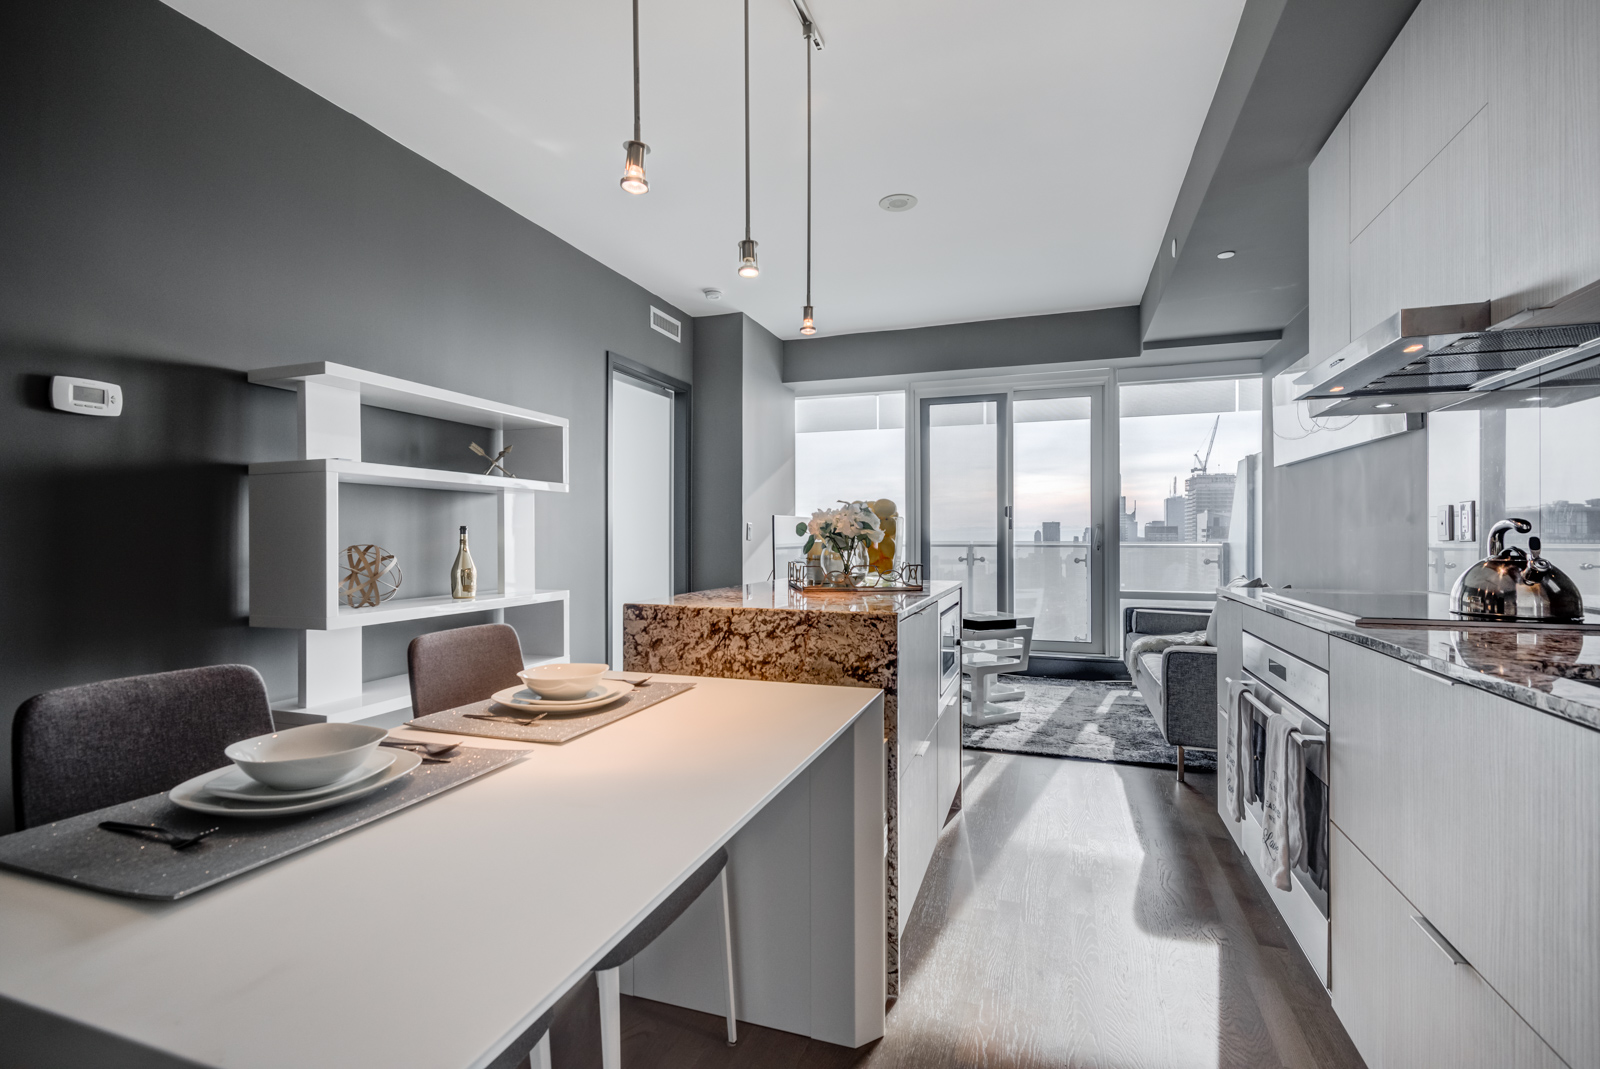 Modern kitchen with white breakfast bar, dark granite counters and stainless-steel appliances covered in sunlight.